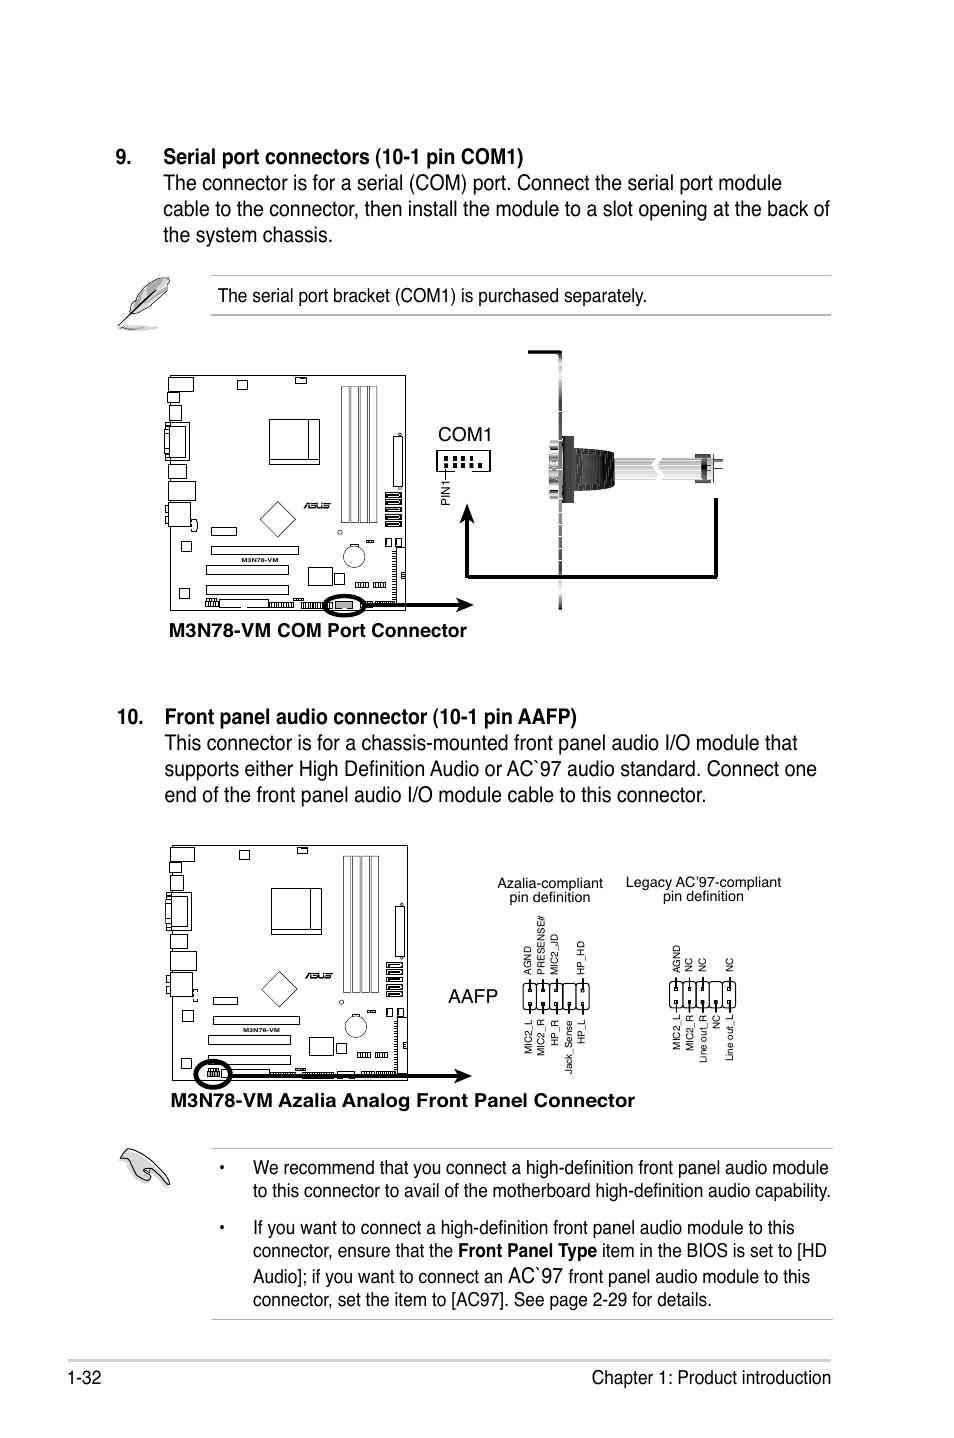 M3n78 Vm Wiring Diagram 23 Images Diagrams Serial Port Pin Asus Page44 Ac97 32 Chapter 1 Product Introduction